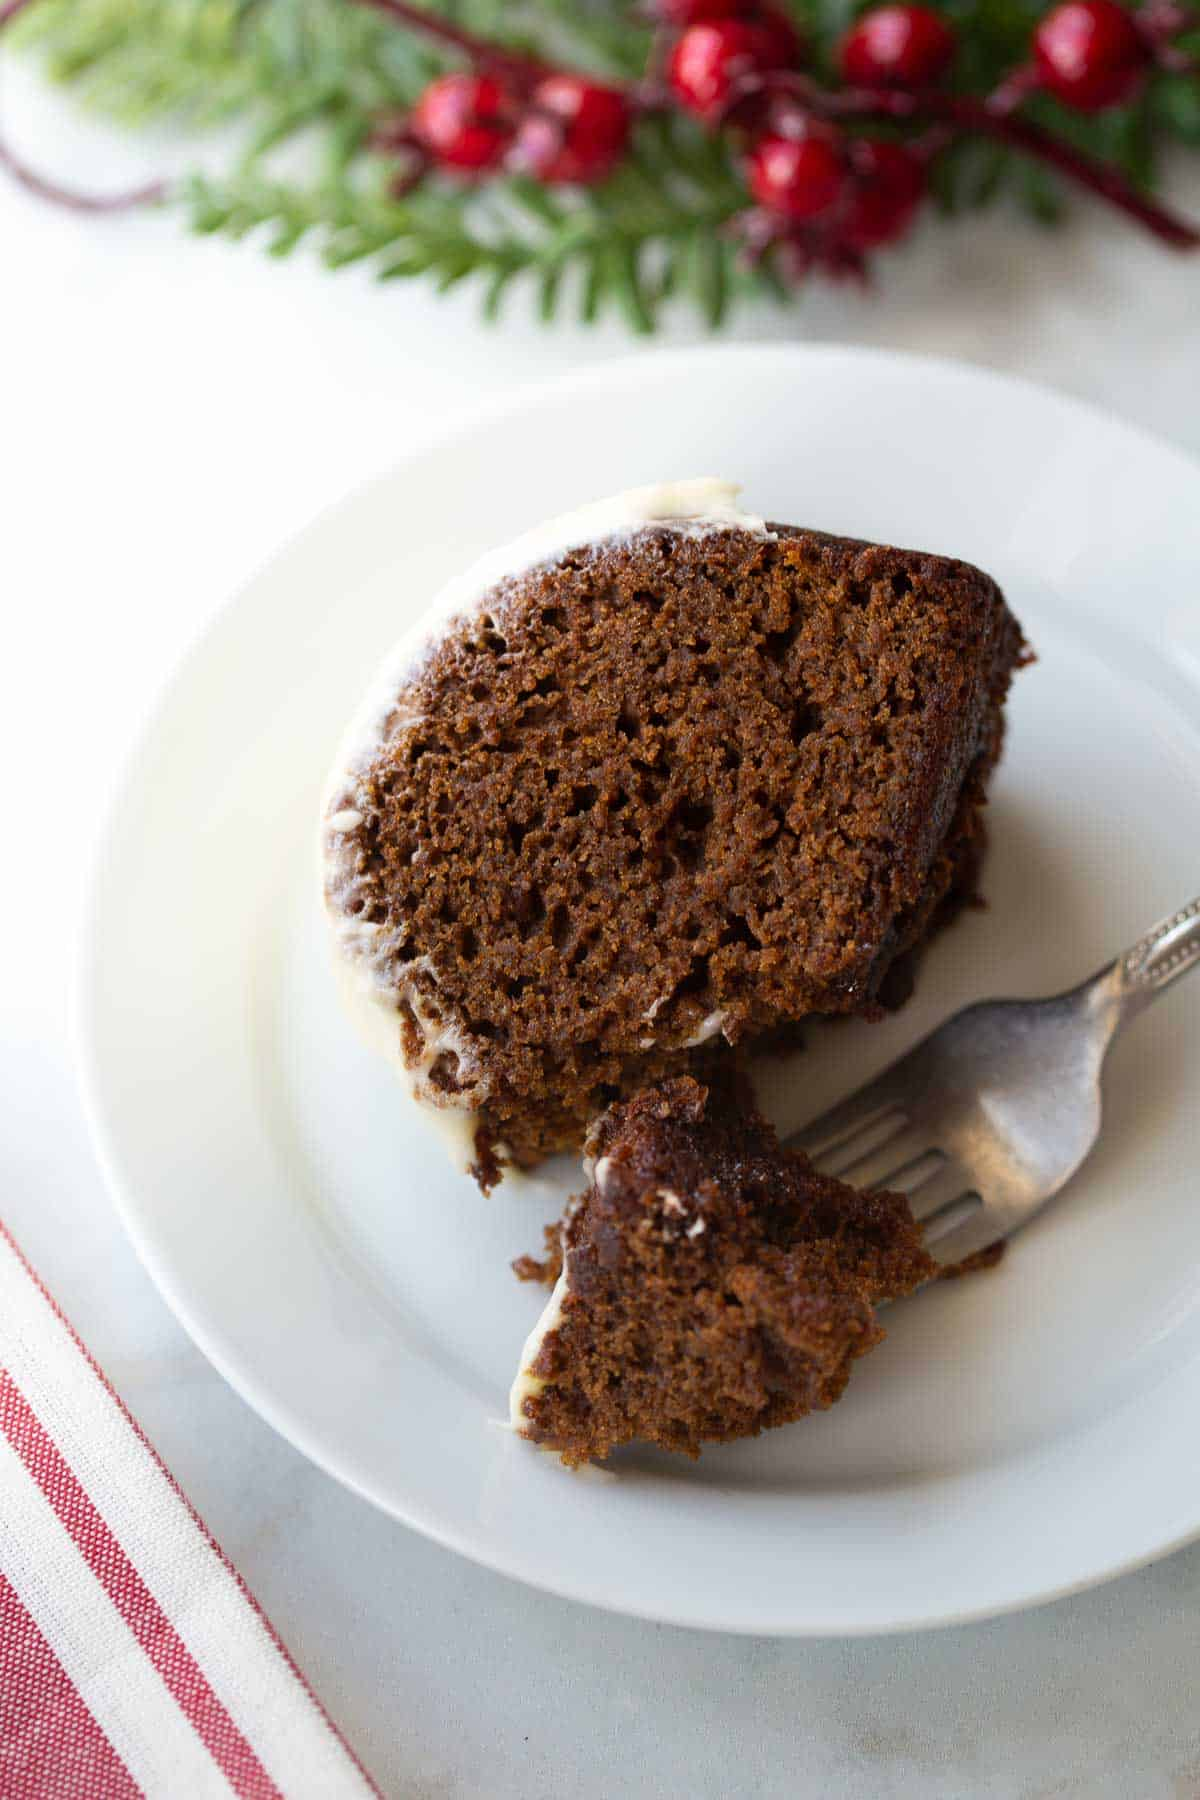 slice of gluten-free gingerbread on white plate